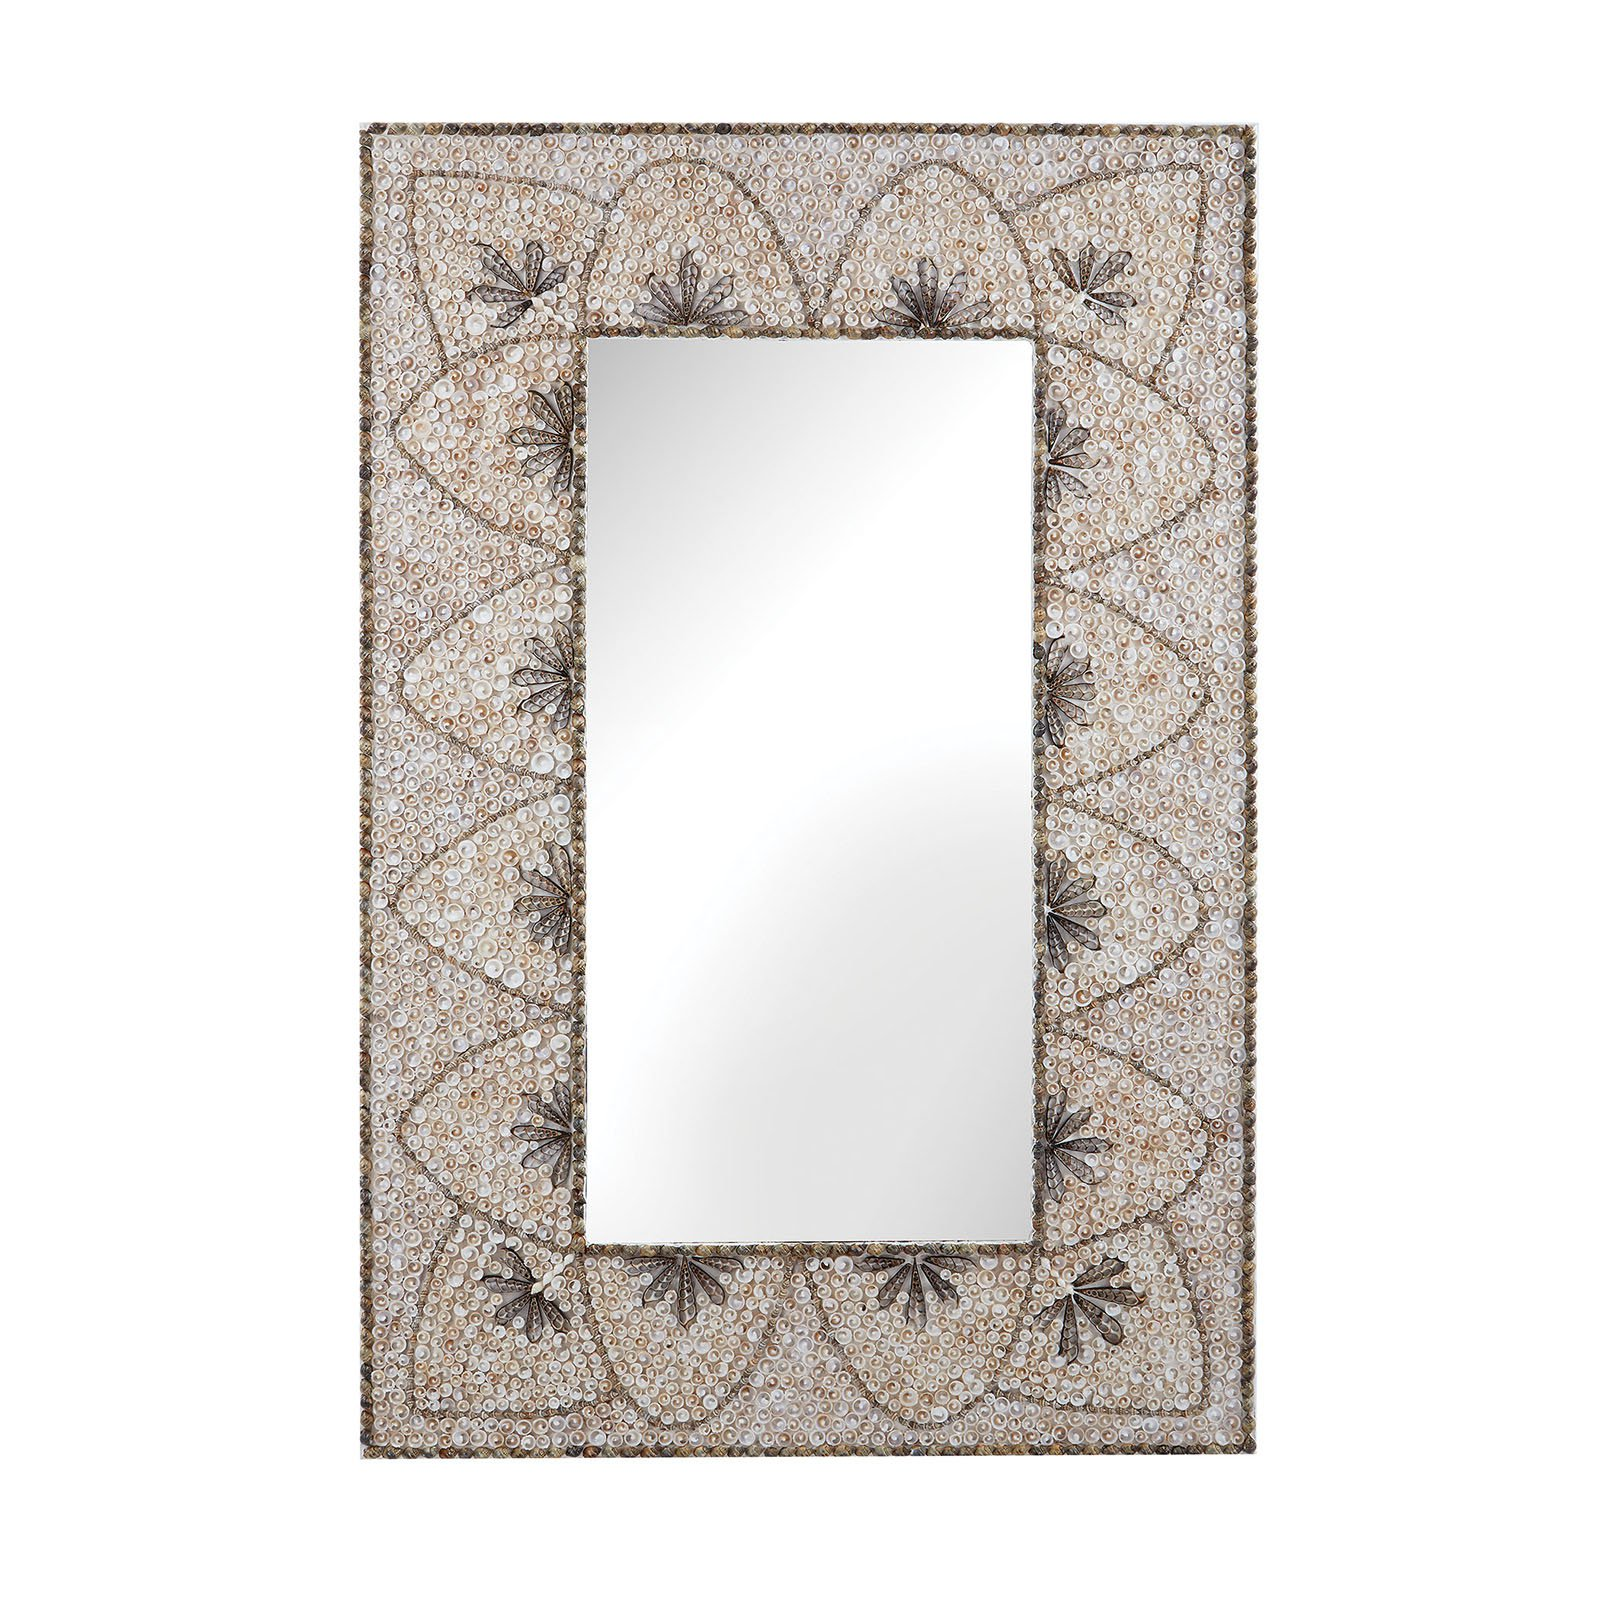 Dimond Home Flower Arc Shell Wall Mirror - 31.5W x 48H in.